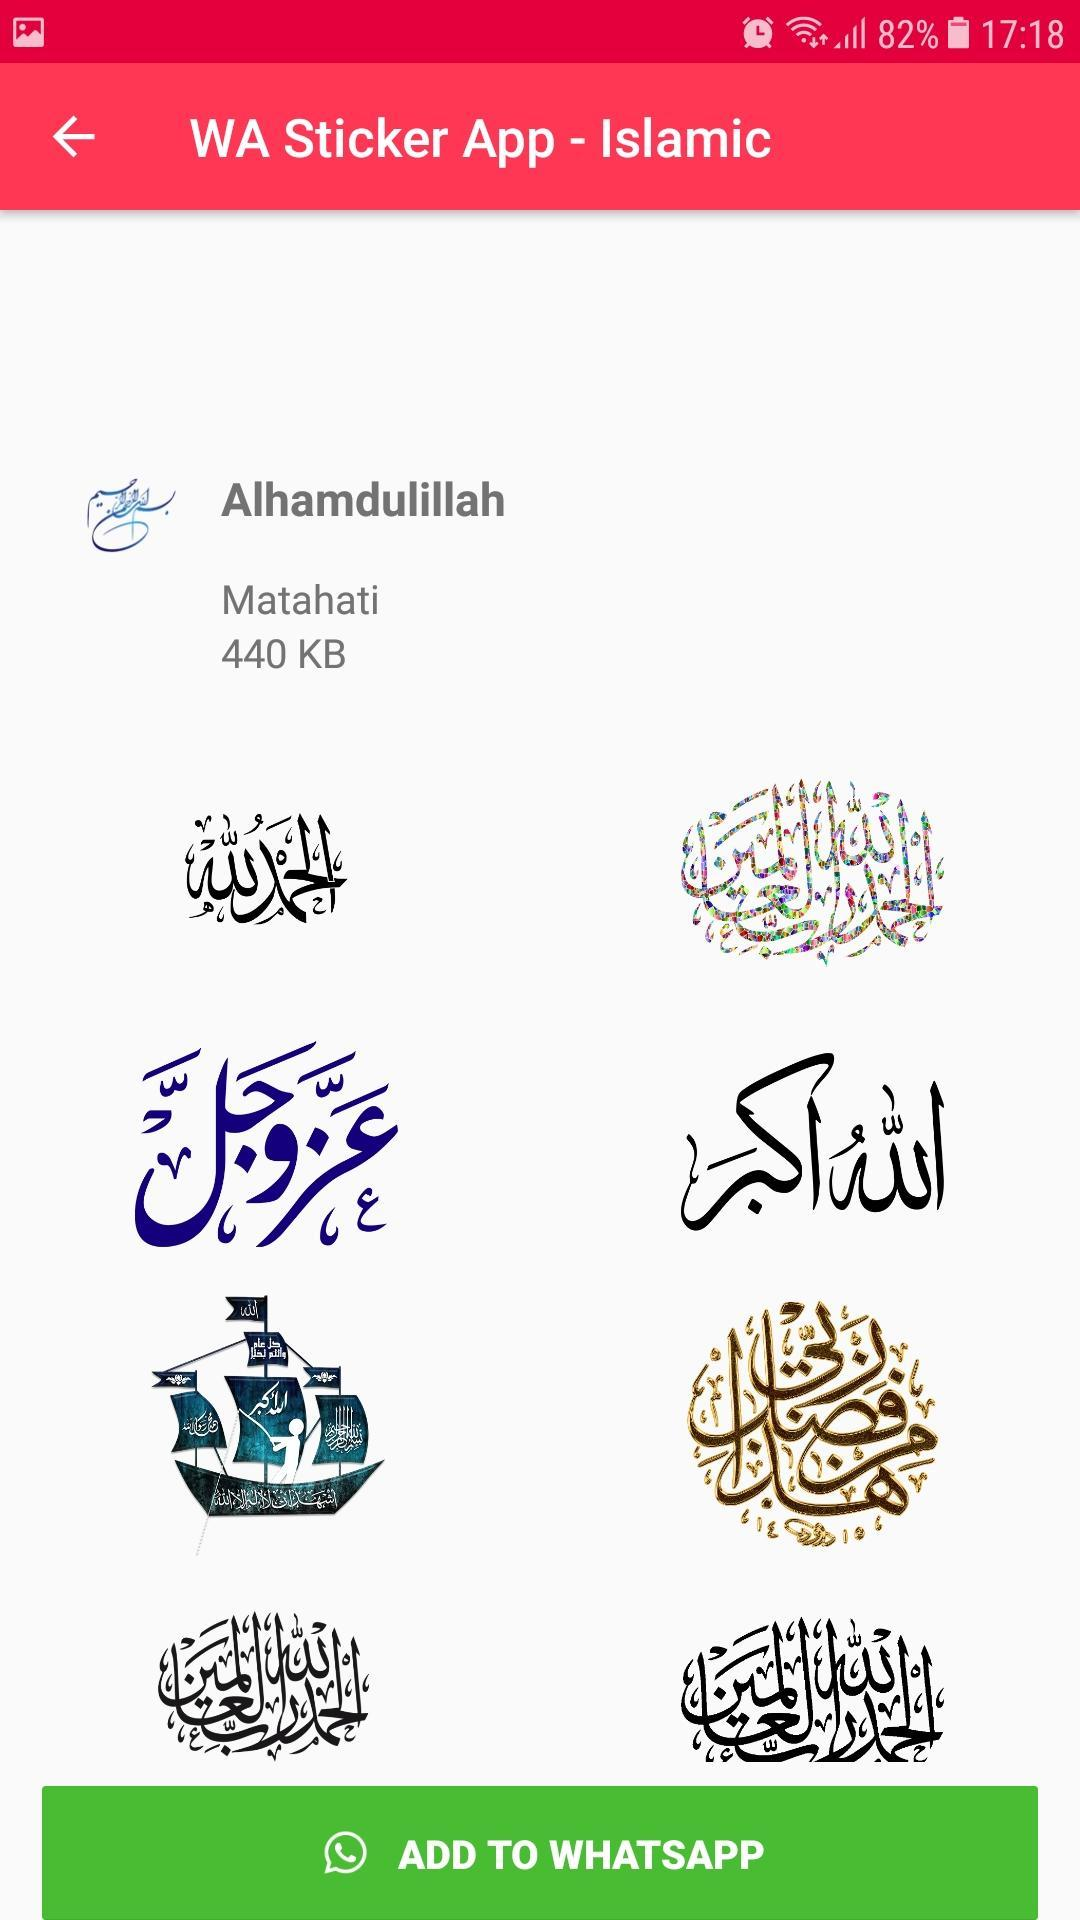 Islamic Sticker Whatsapp For Wastickerapps For Android Apk